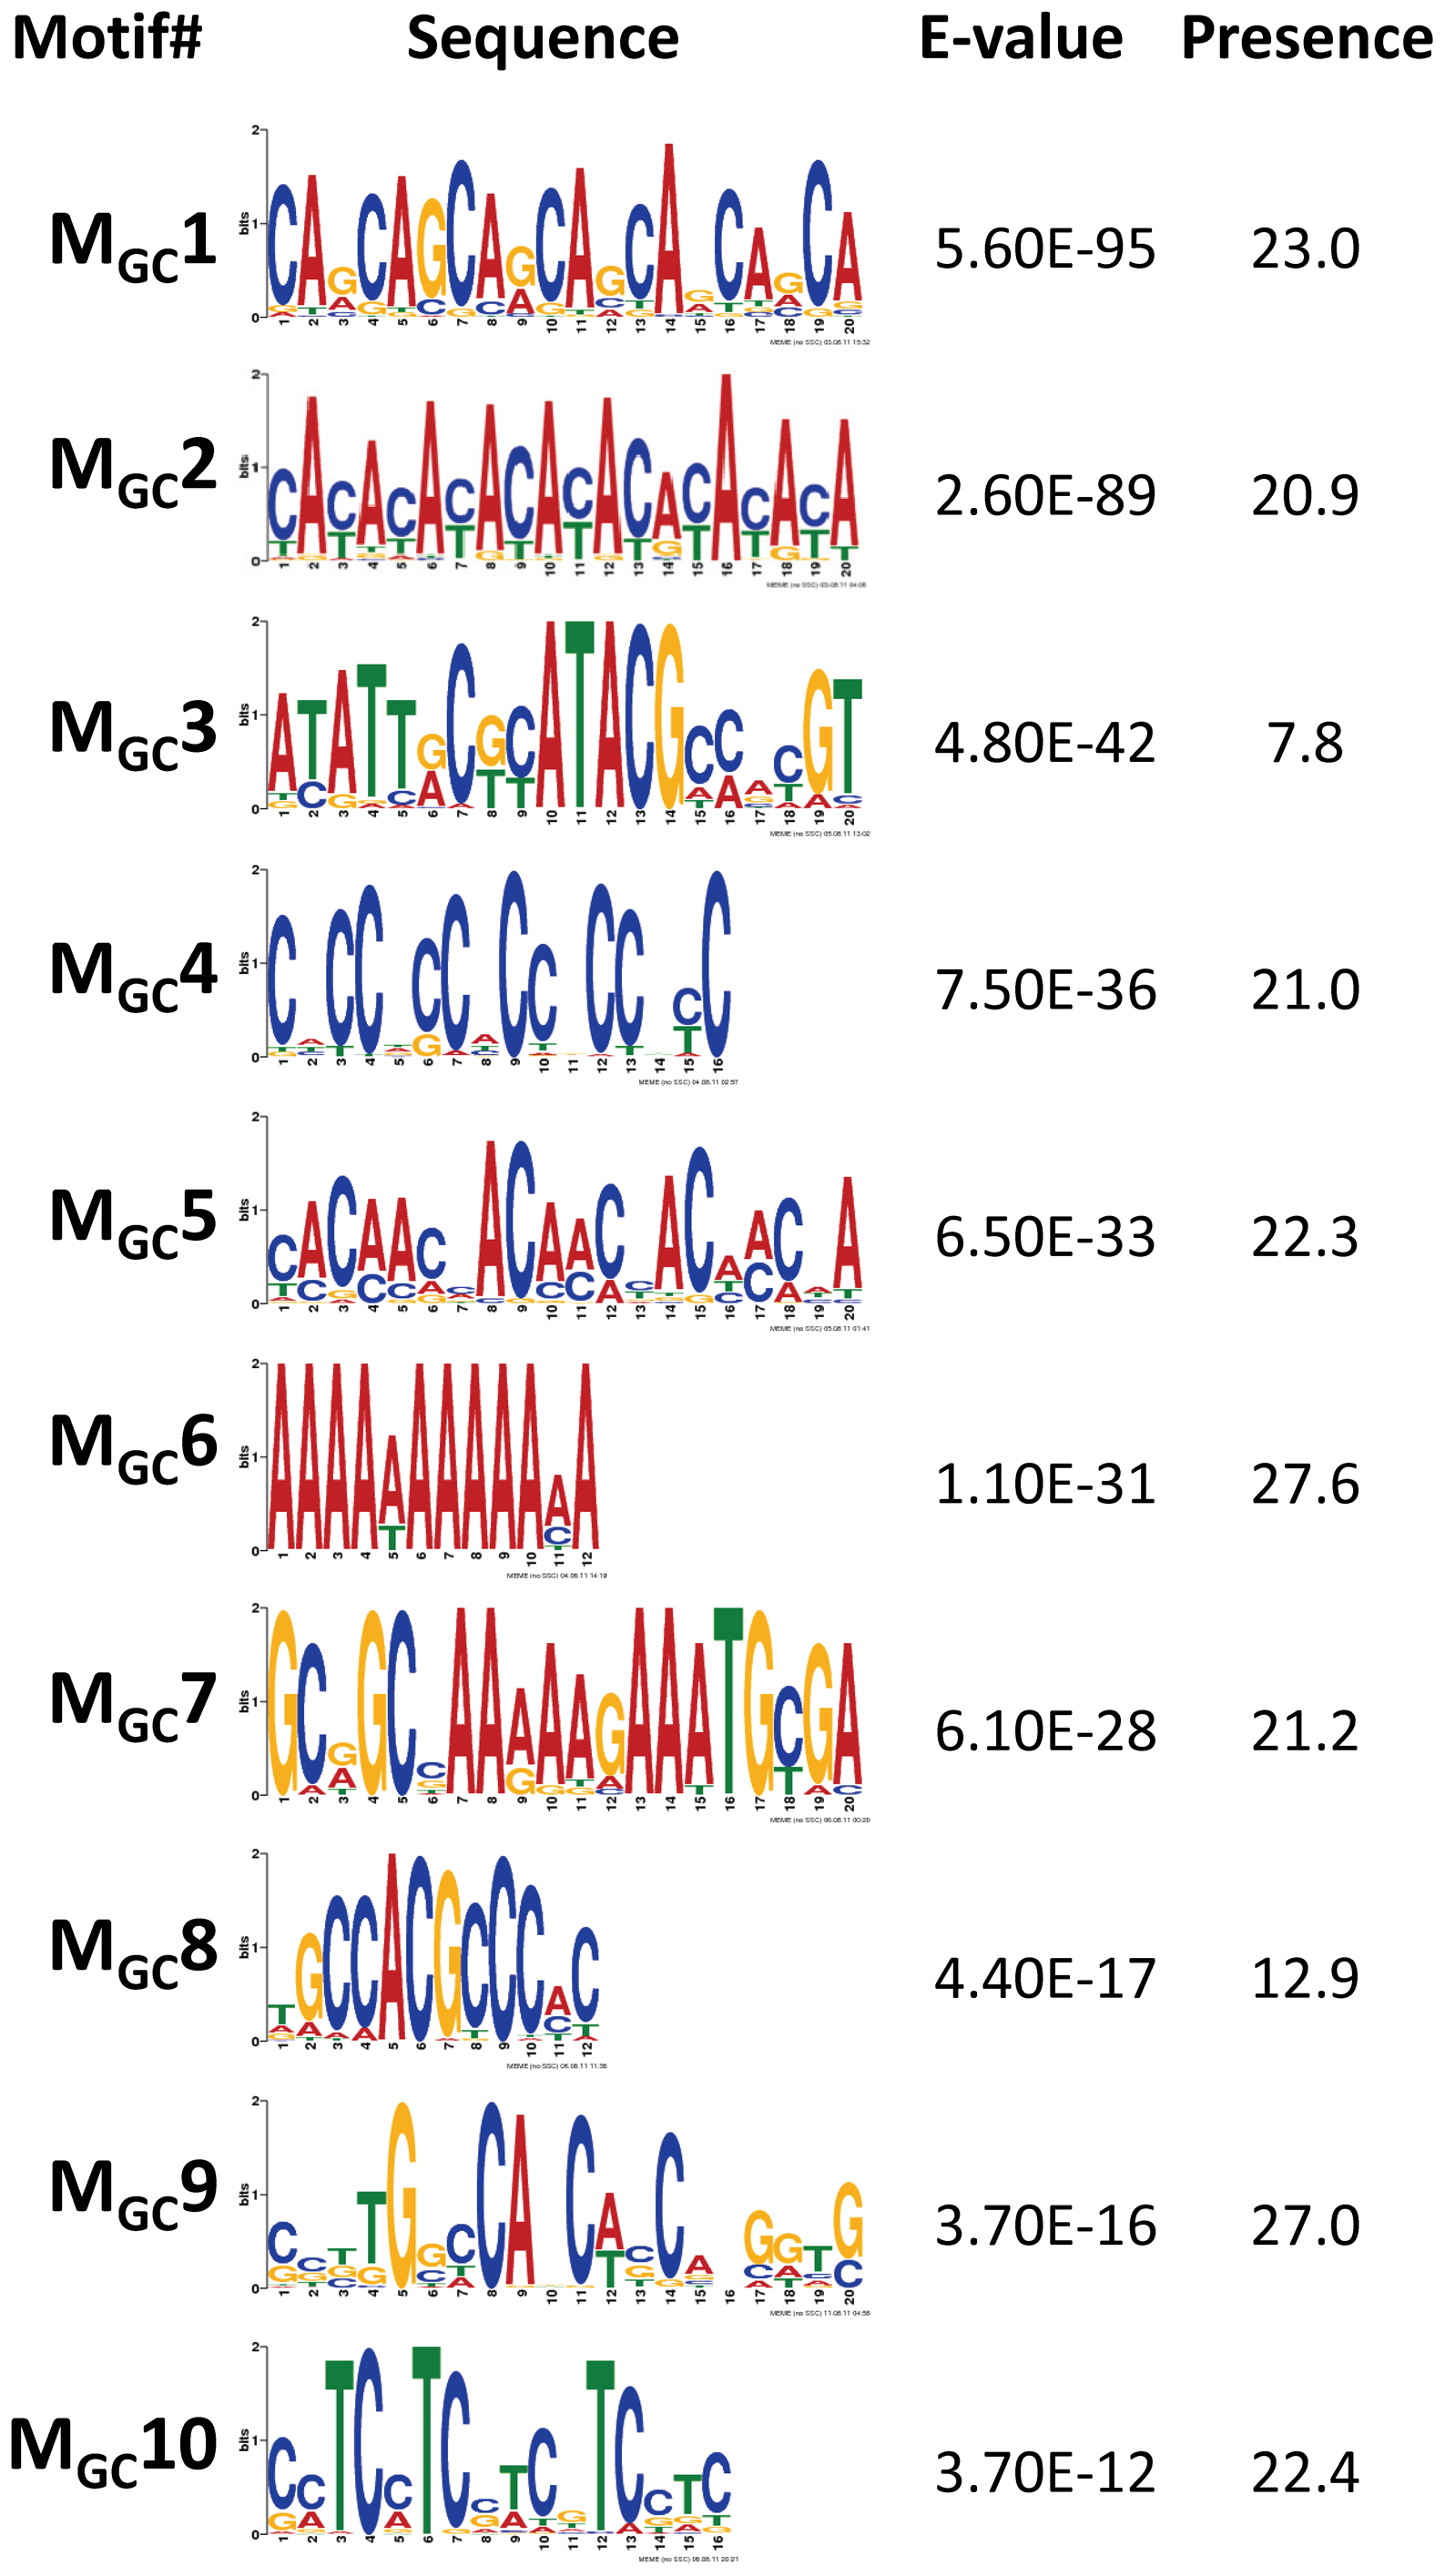 Top motifs found enriched in sequences encompassing GC events.